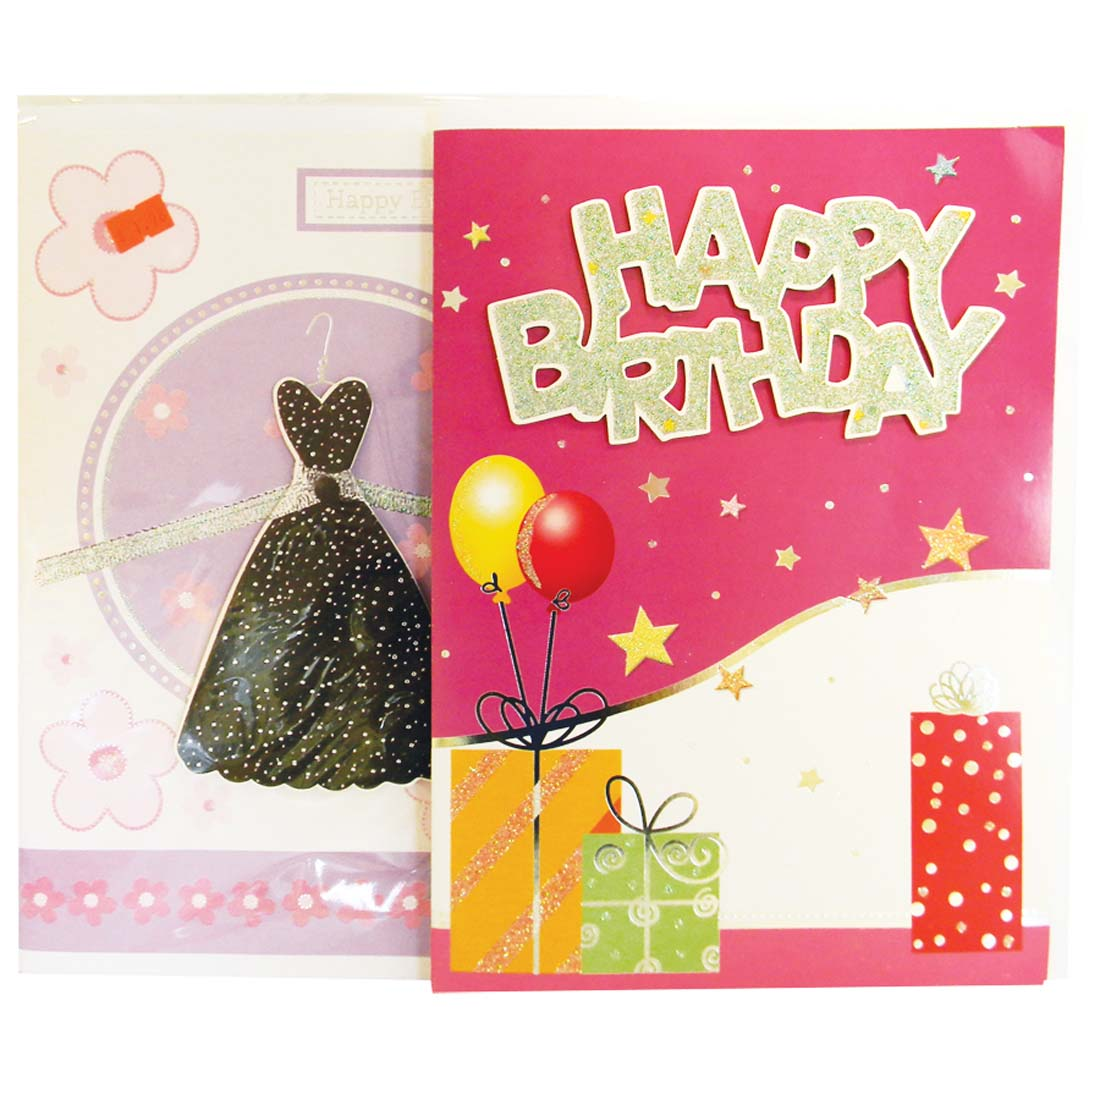 View JUMBO BIRTHDAY CARDS 8.25 X 11.5 INCH ASSORTED GLITTER & 3-D DESIGNS